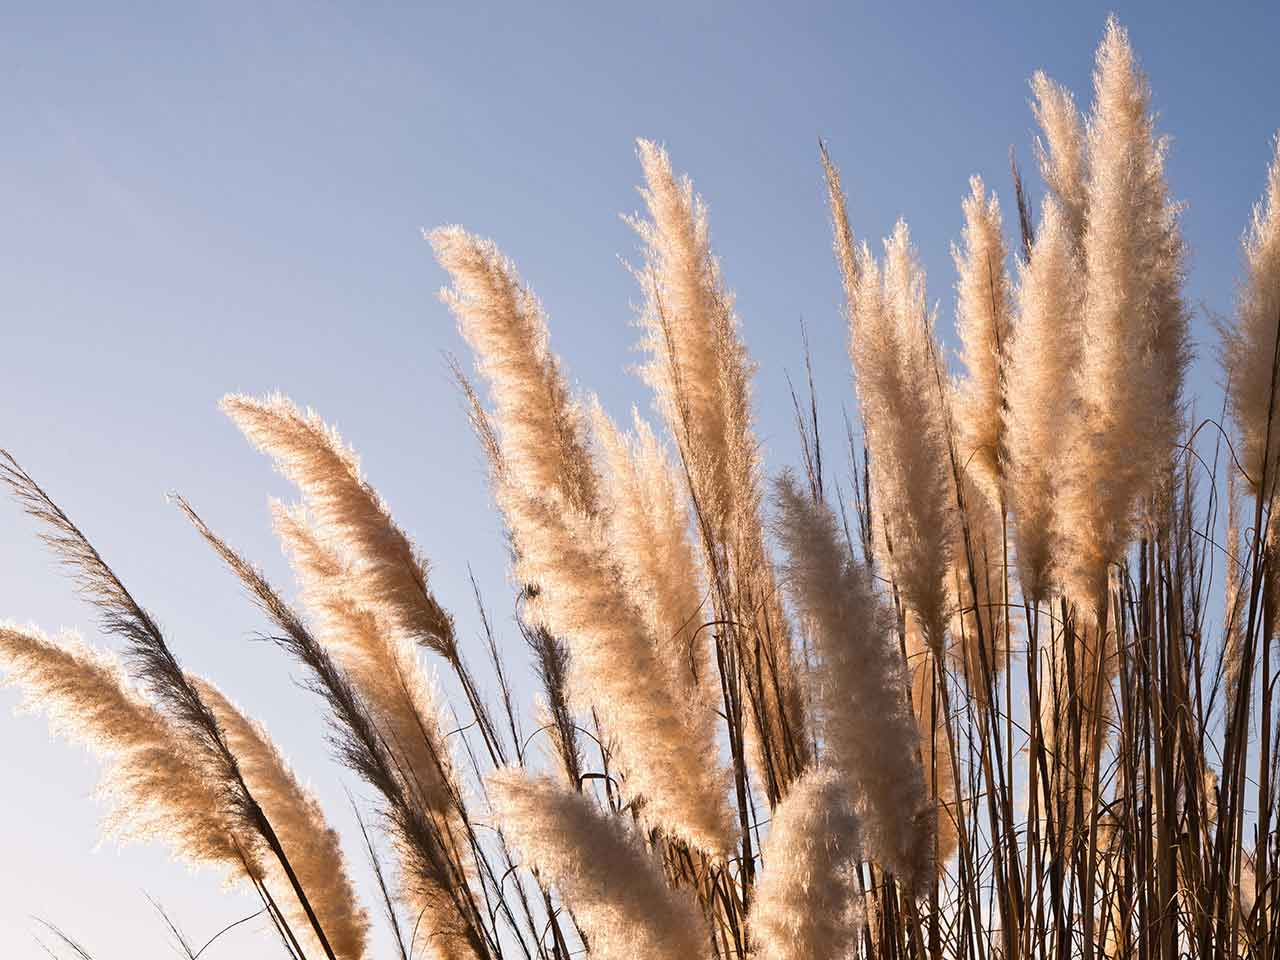 Pampas grass against a blue sky